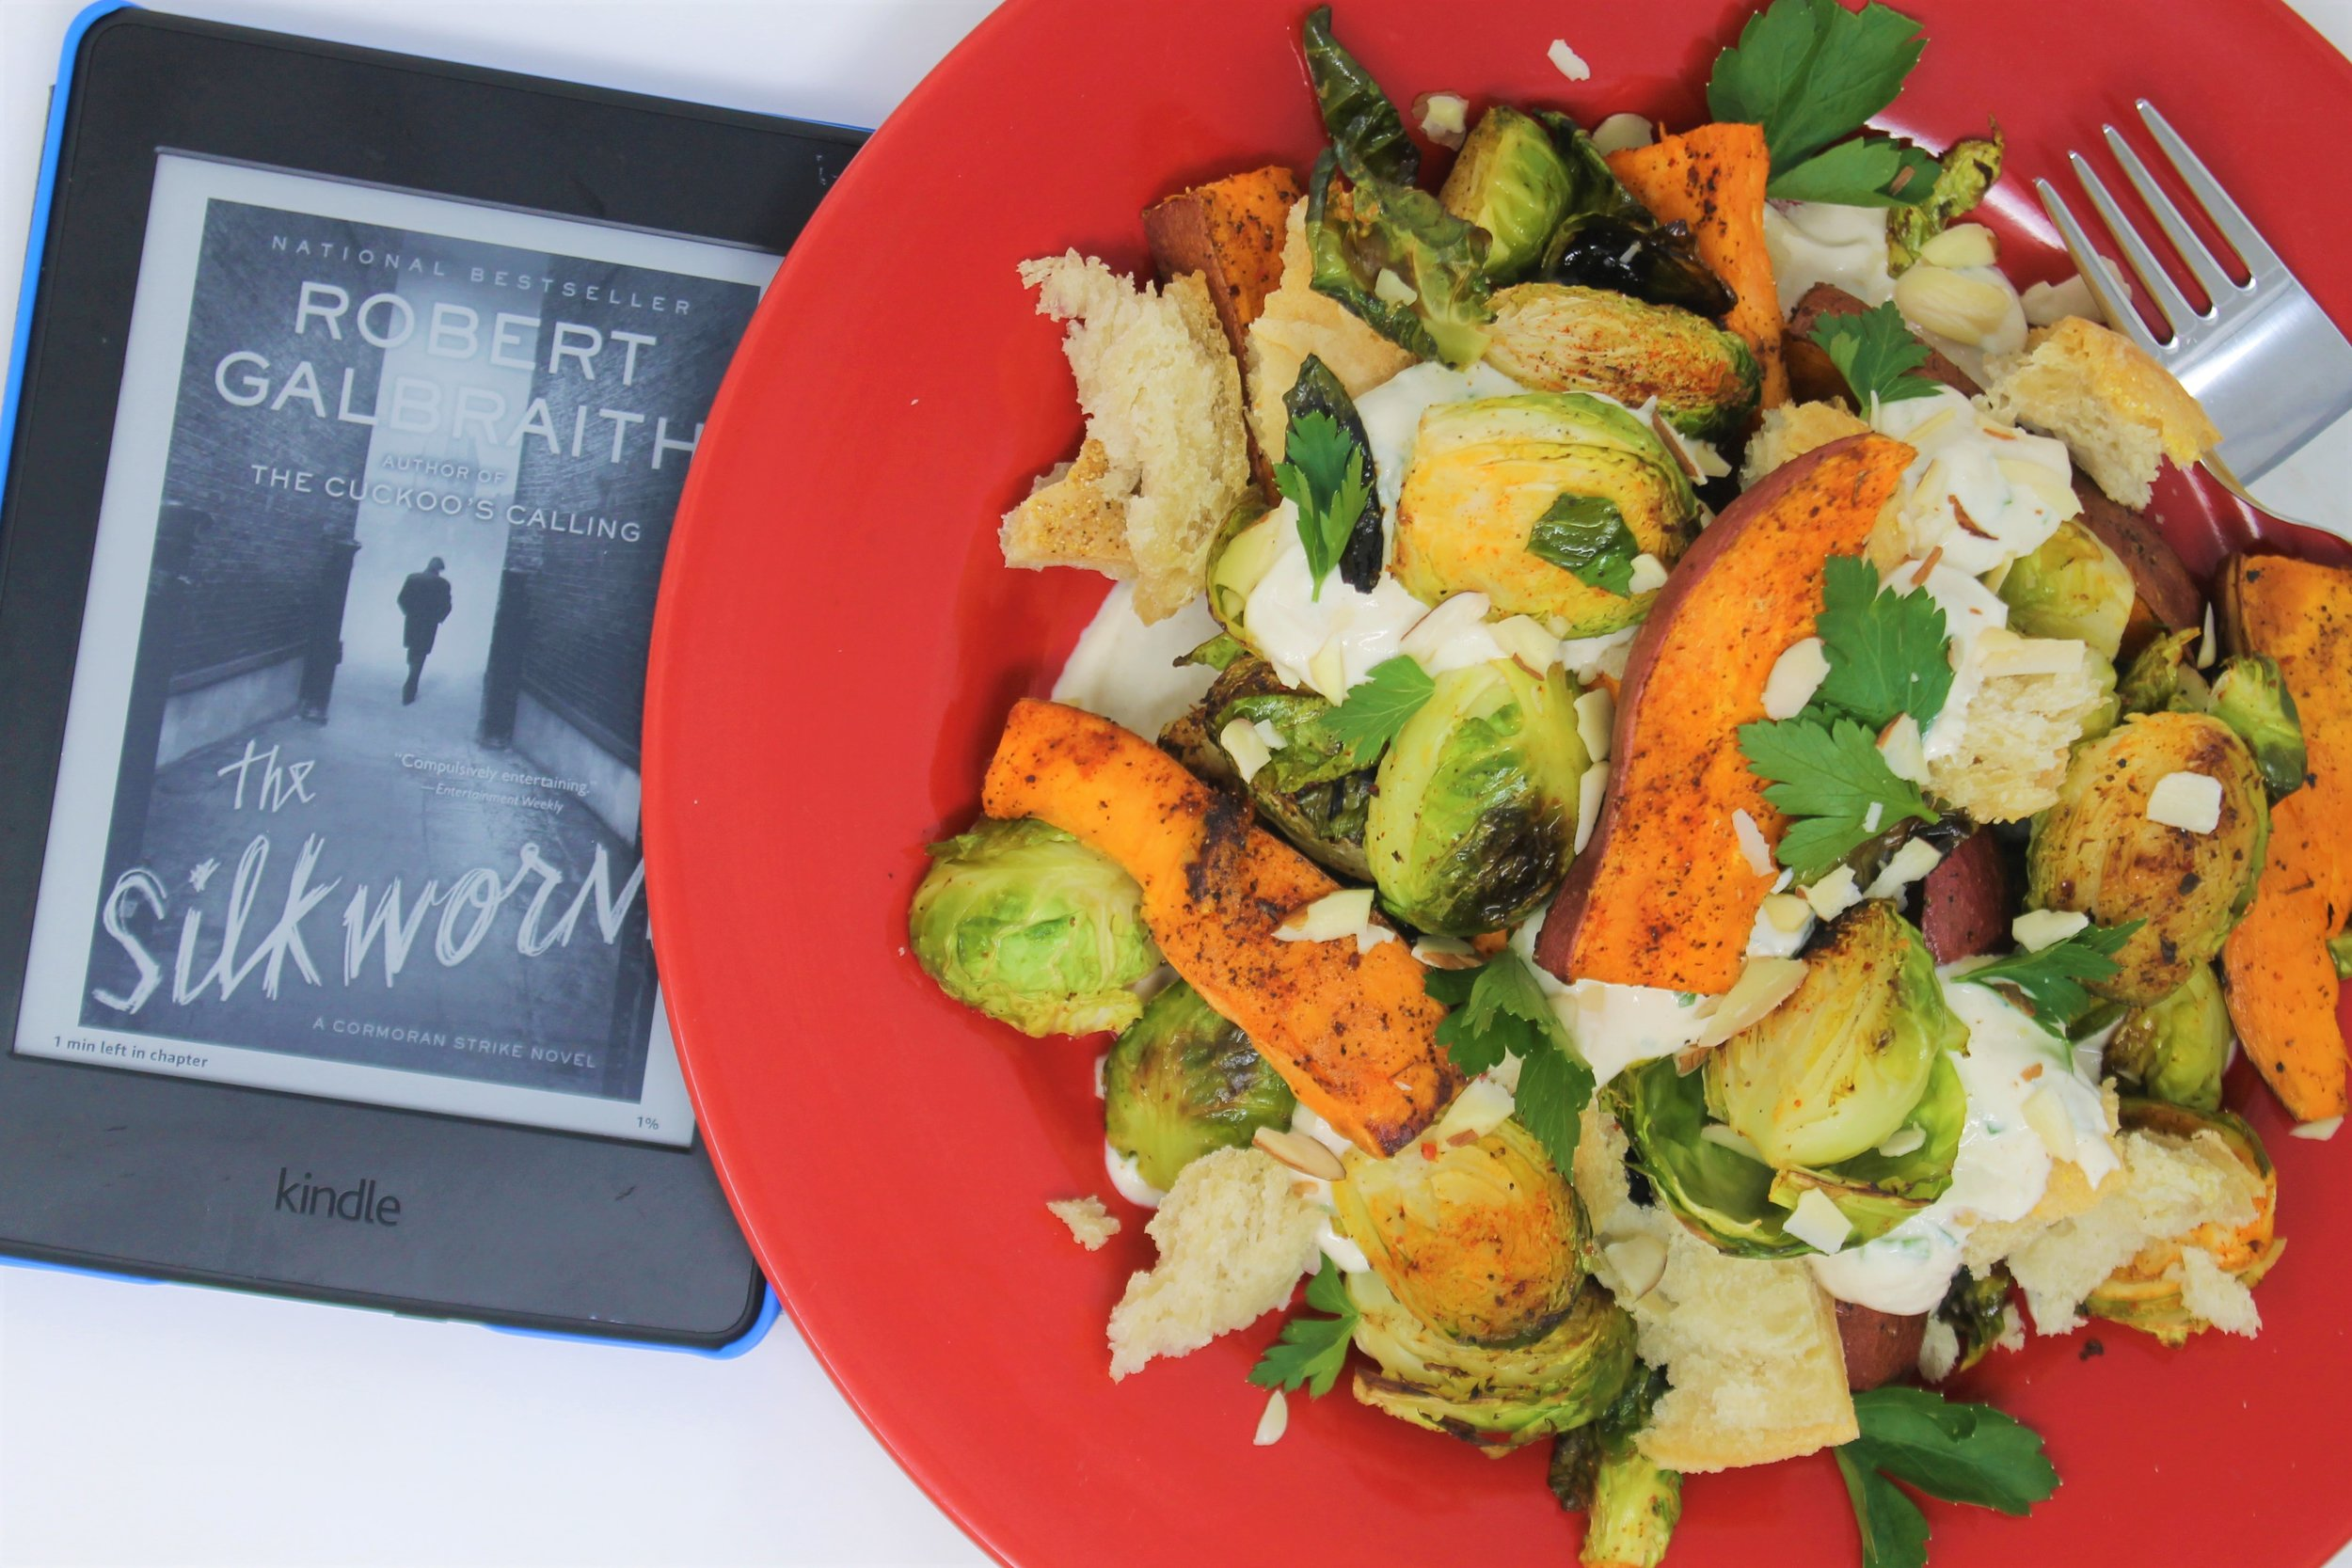 I embraced this salad into my stomach almost as fast as I embraced that book itno my head.